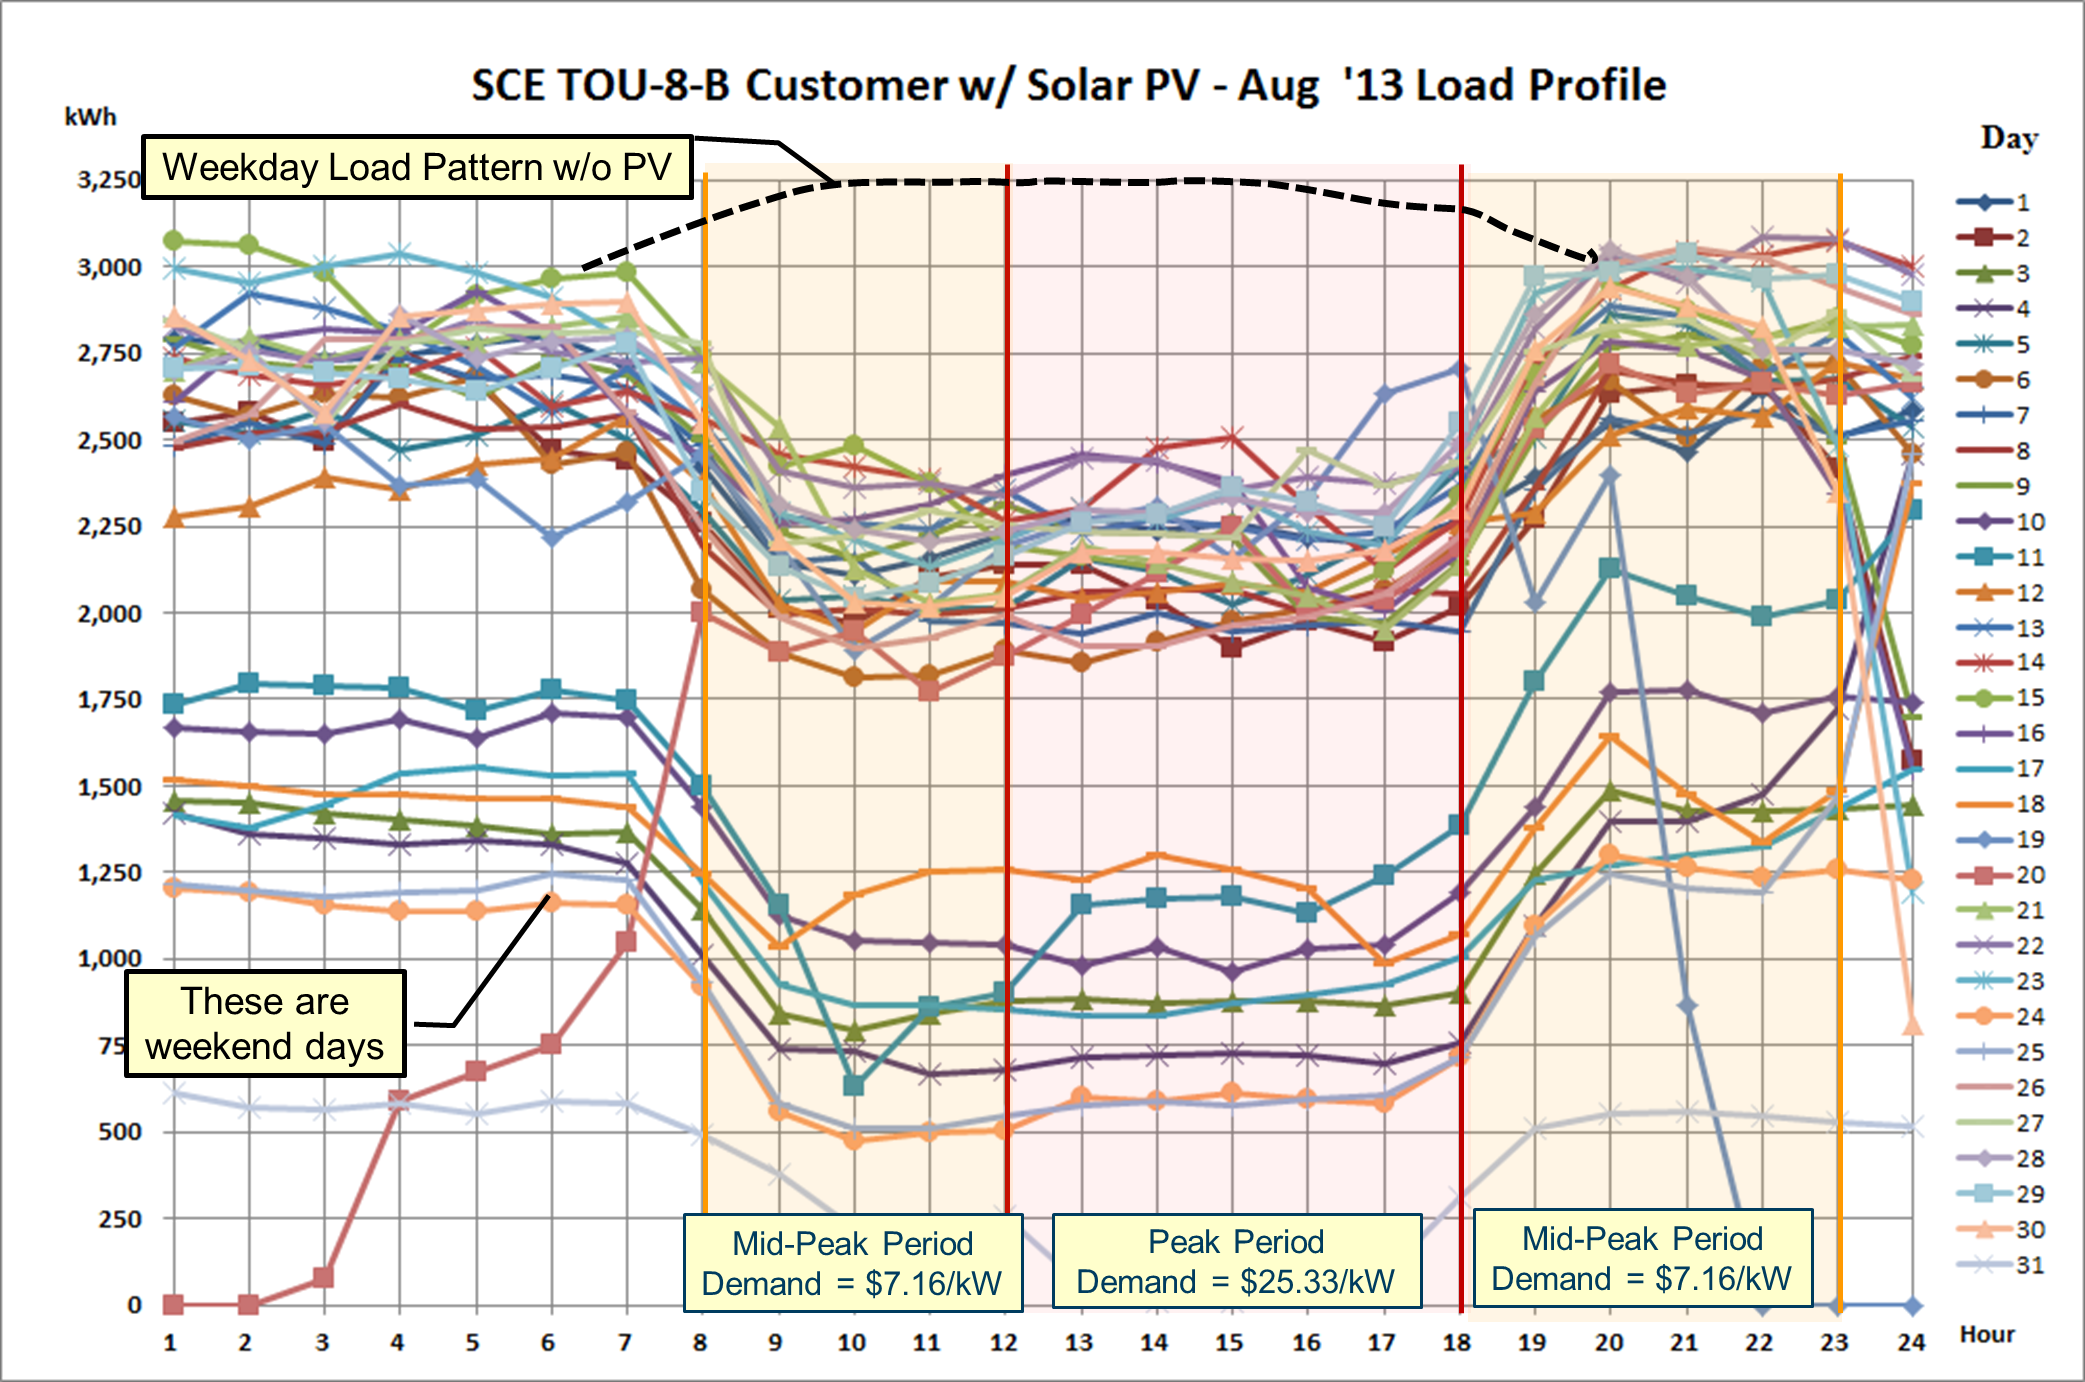 The X axis shows hours 1 - 24 and the Y axis shows hourly kWh usage. Each line depicts the hourly load for a given day of the month and the legend to the right shows the line colors associated with each day.